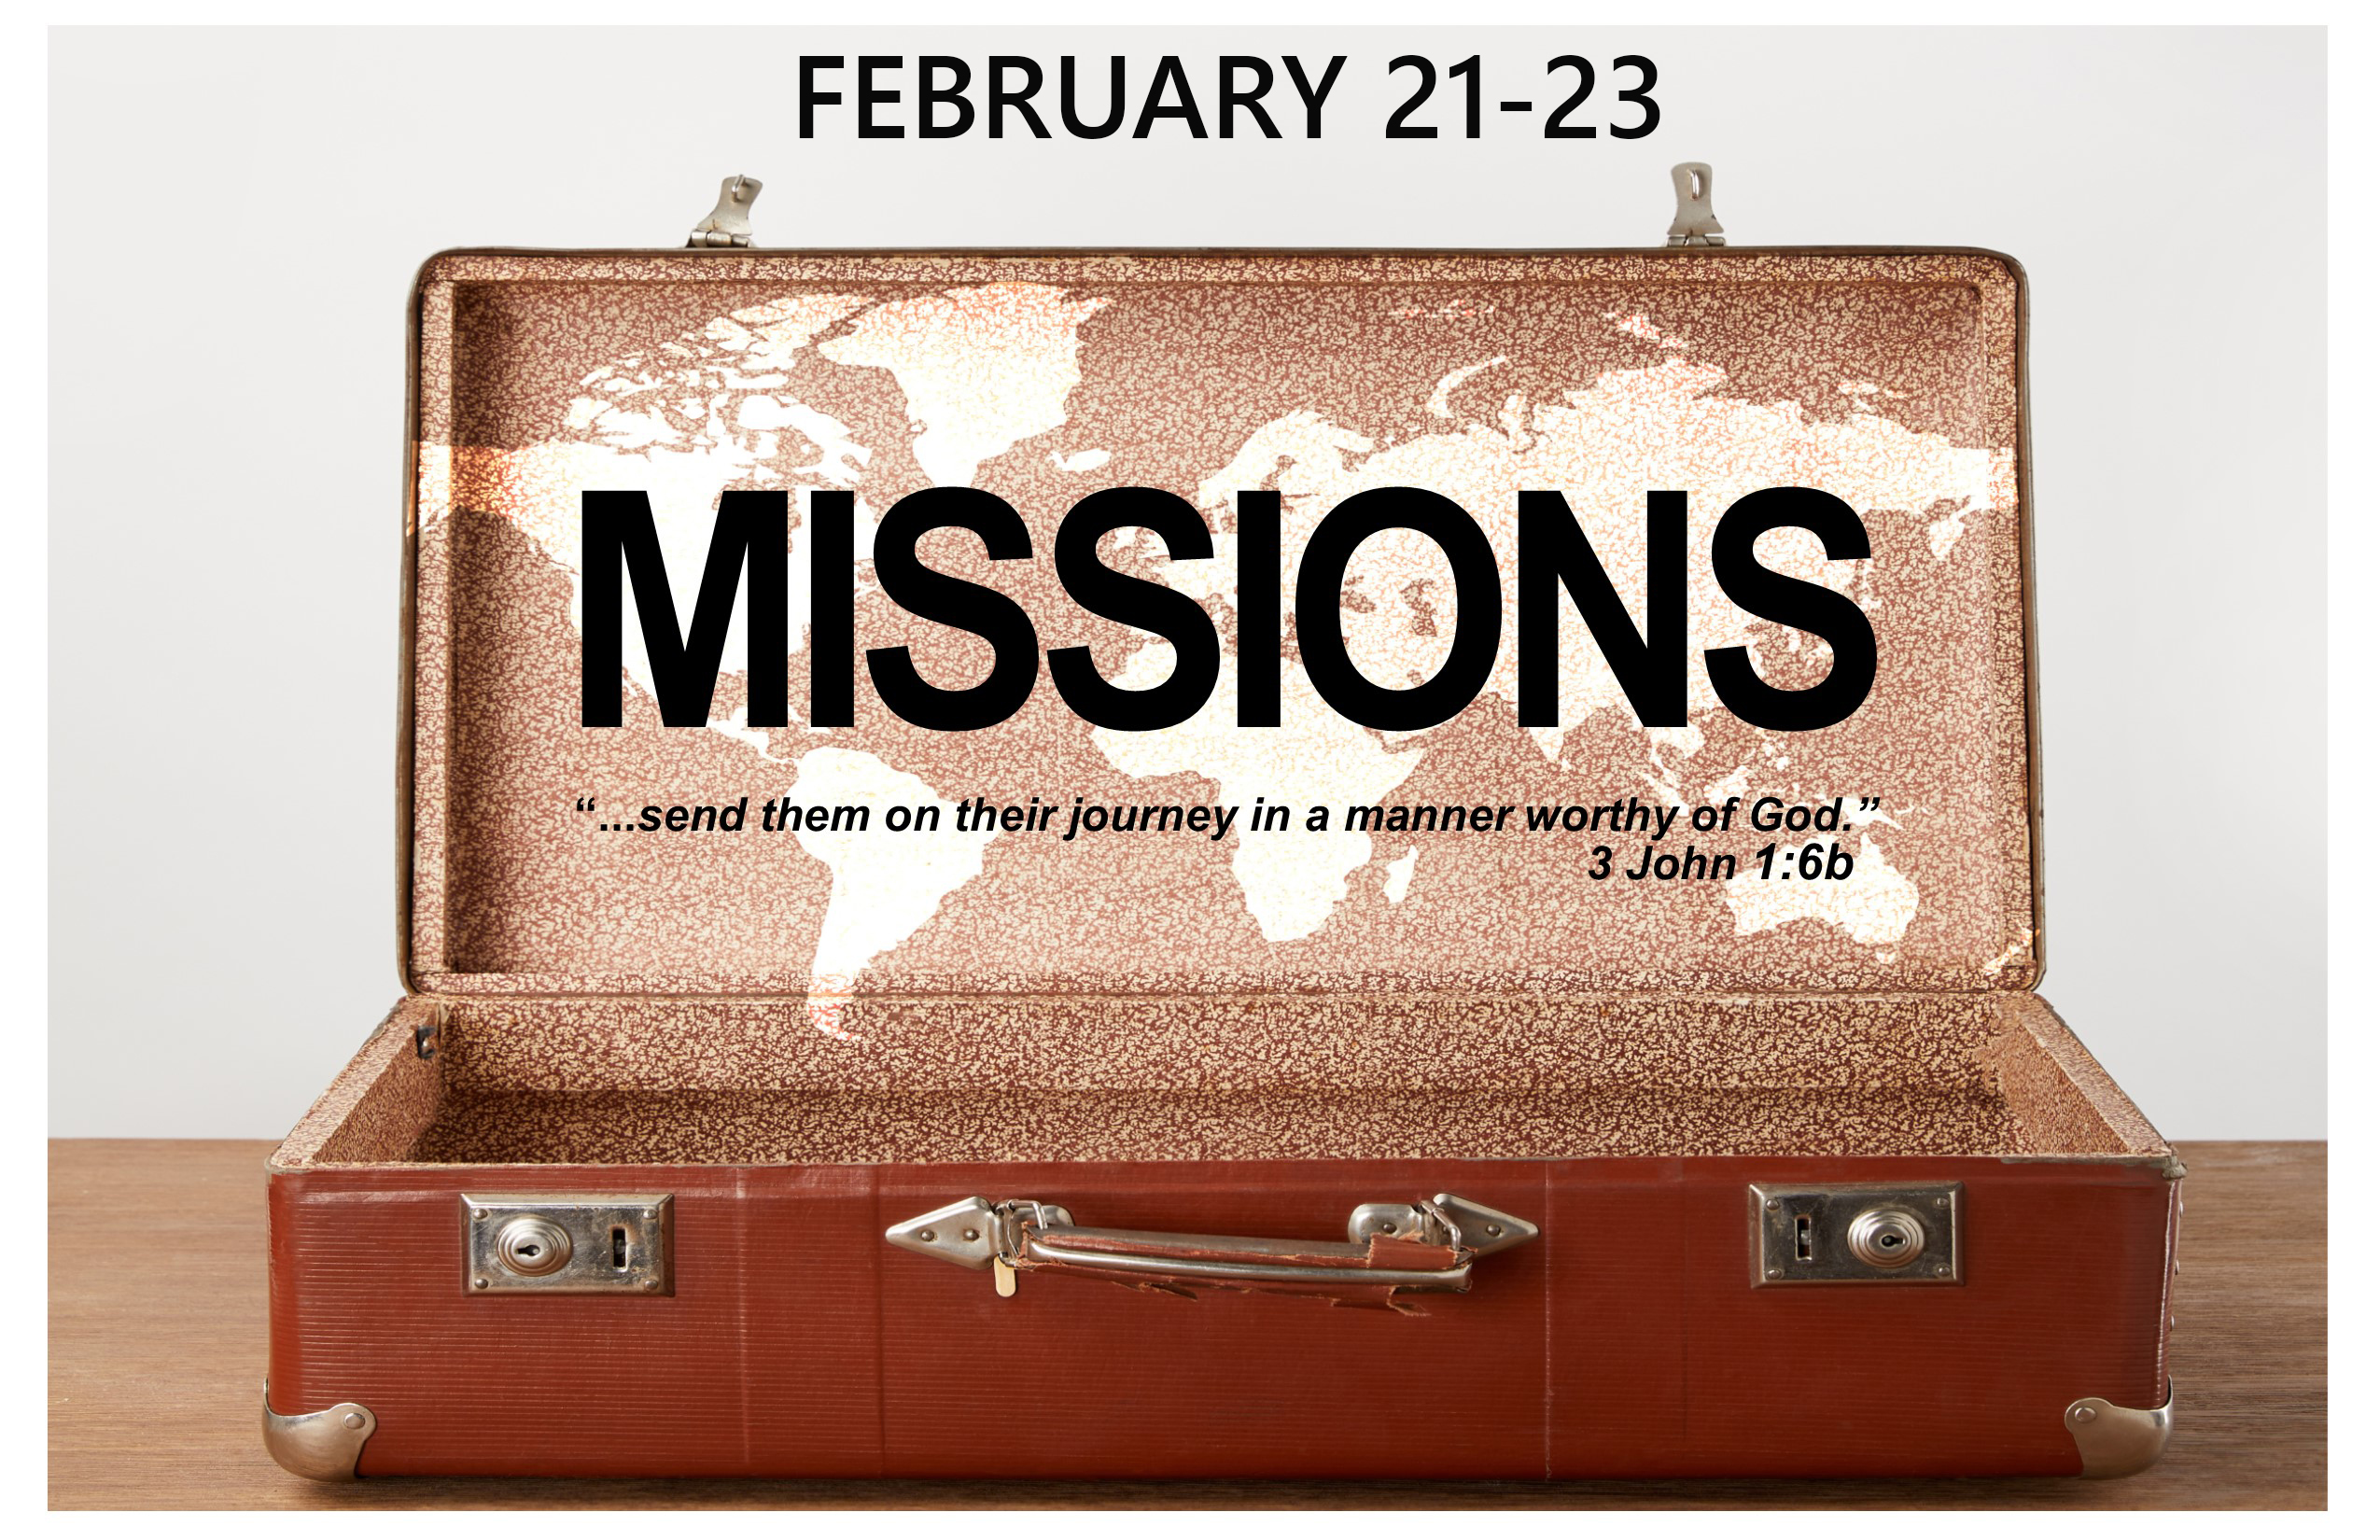 2020 Missions Conference date